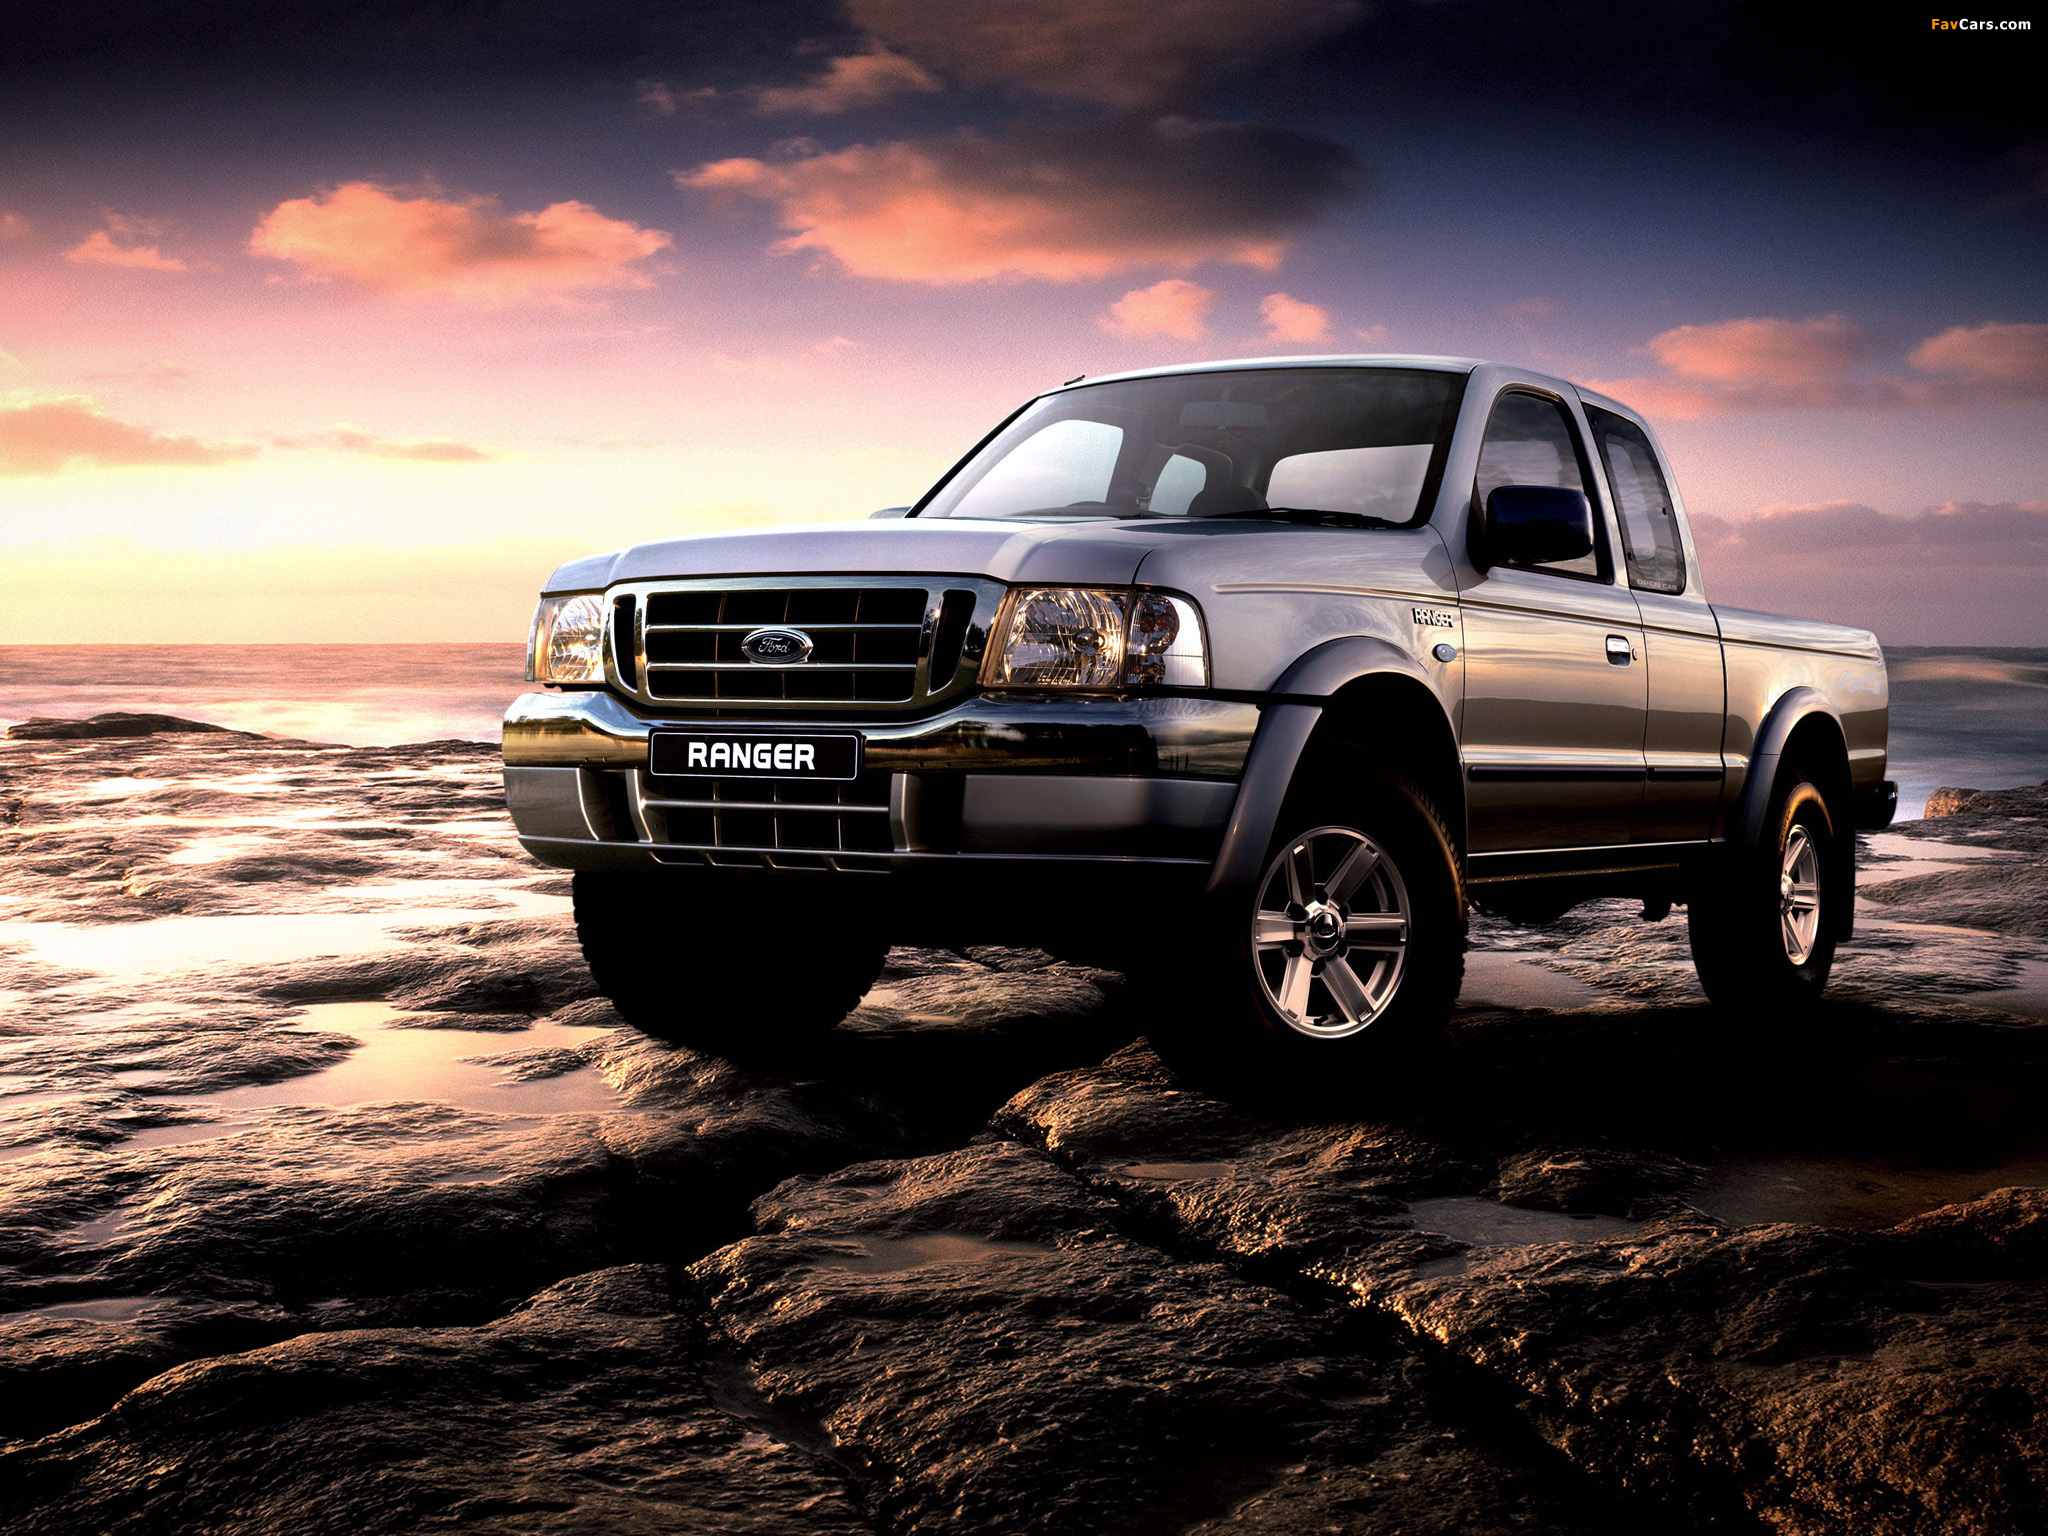 2048x1536 - Ford Ranger Wallpapers 1